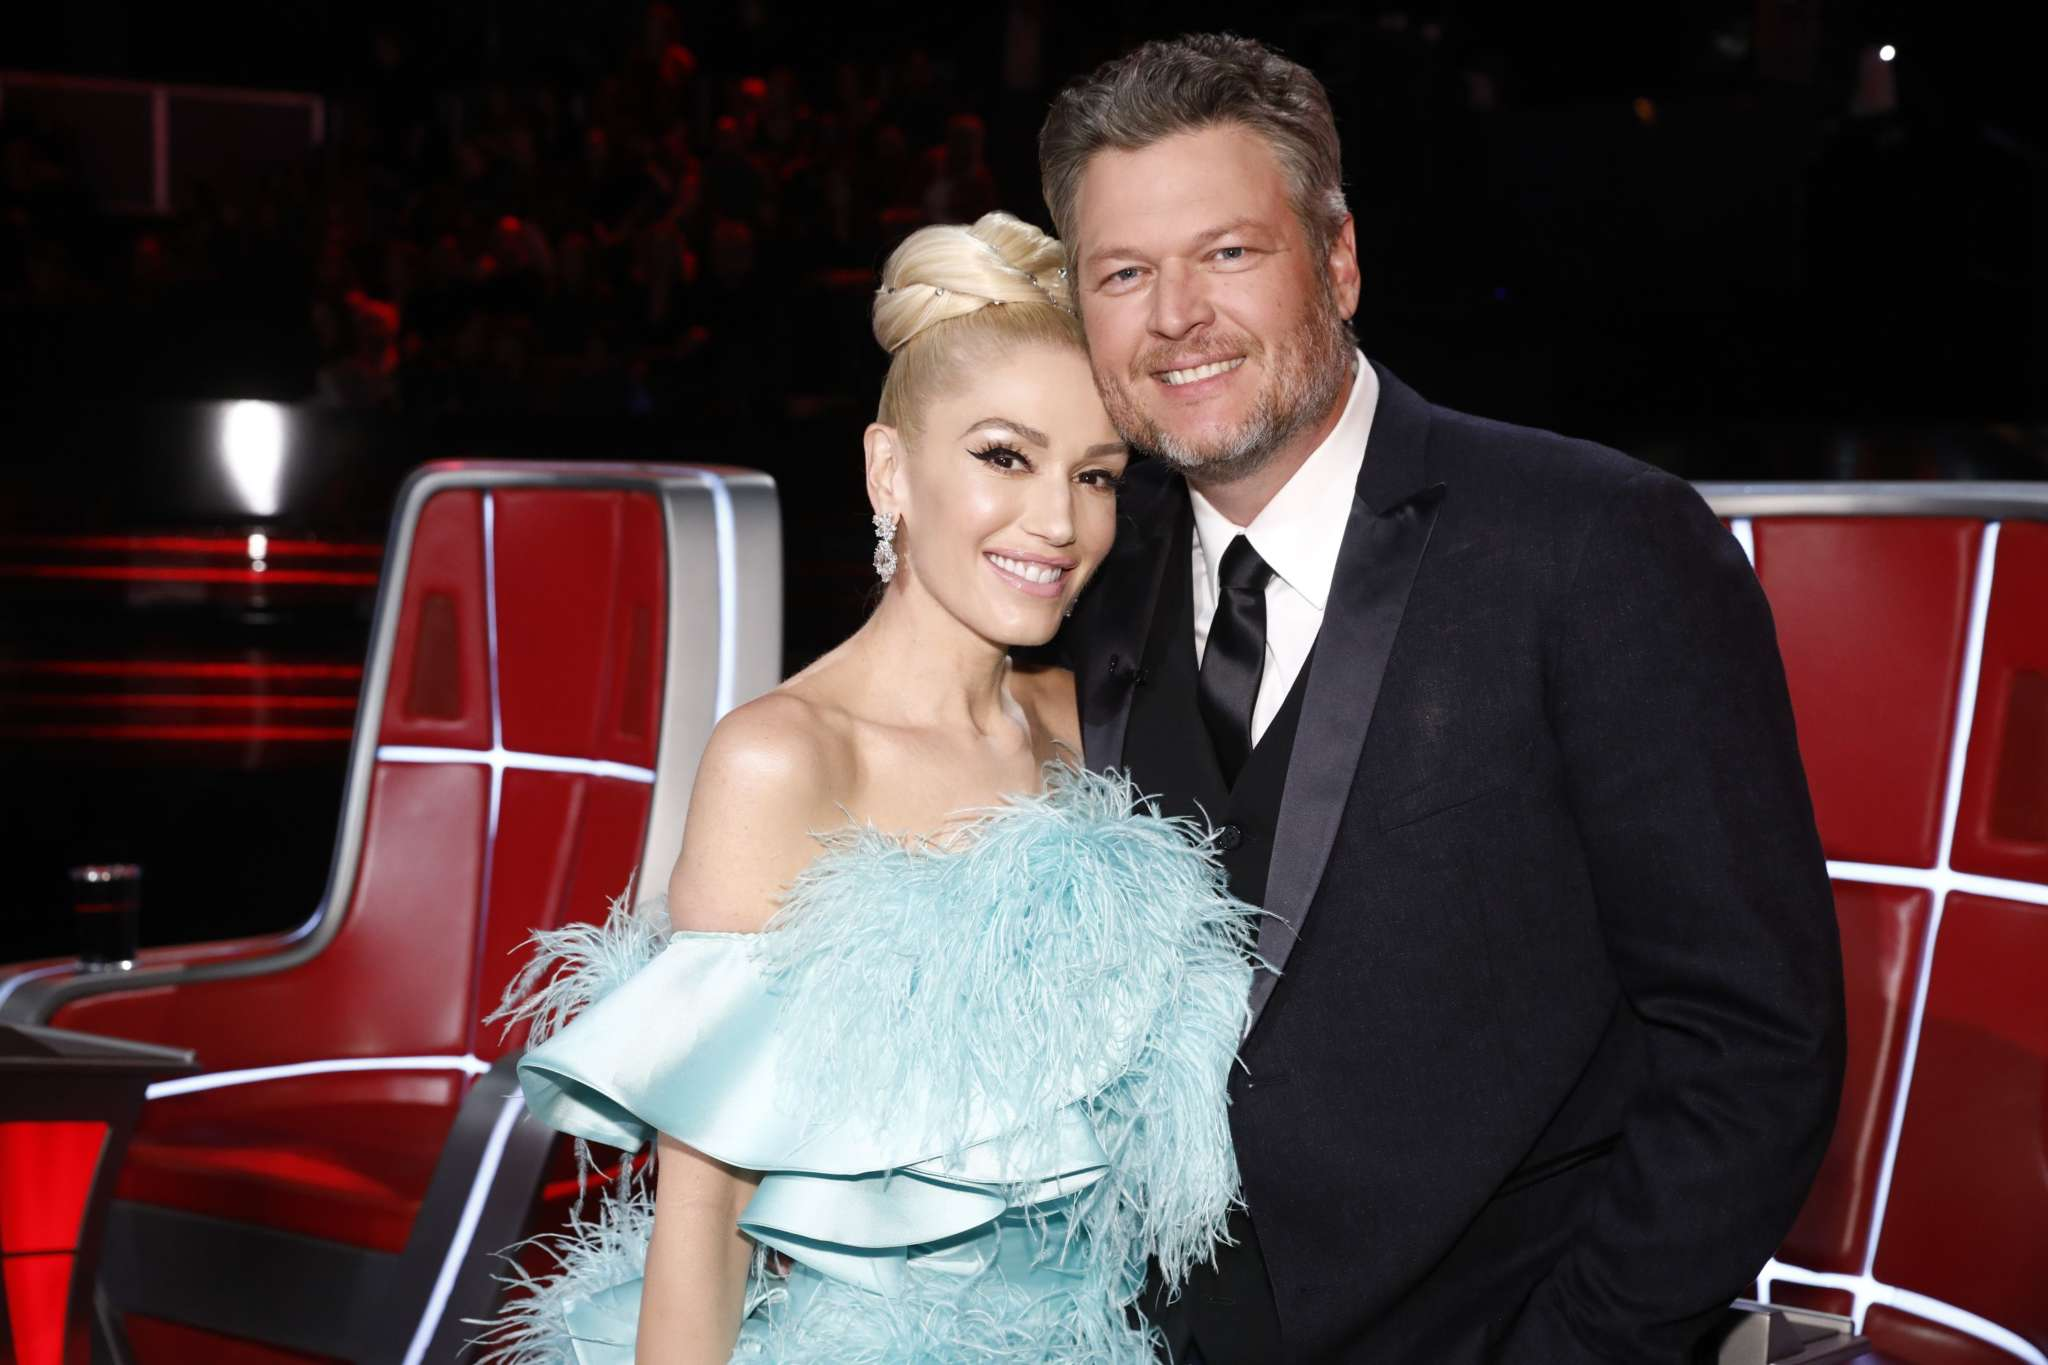 Blake Shelton Reportedly Looking Forward To Spending 'The Rest Of His Life' With Gwen Stefani – Here's Why!